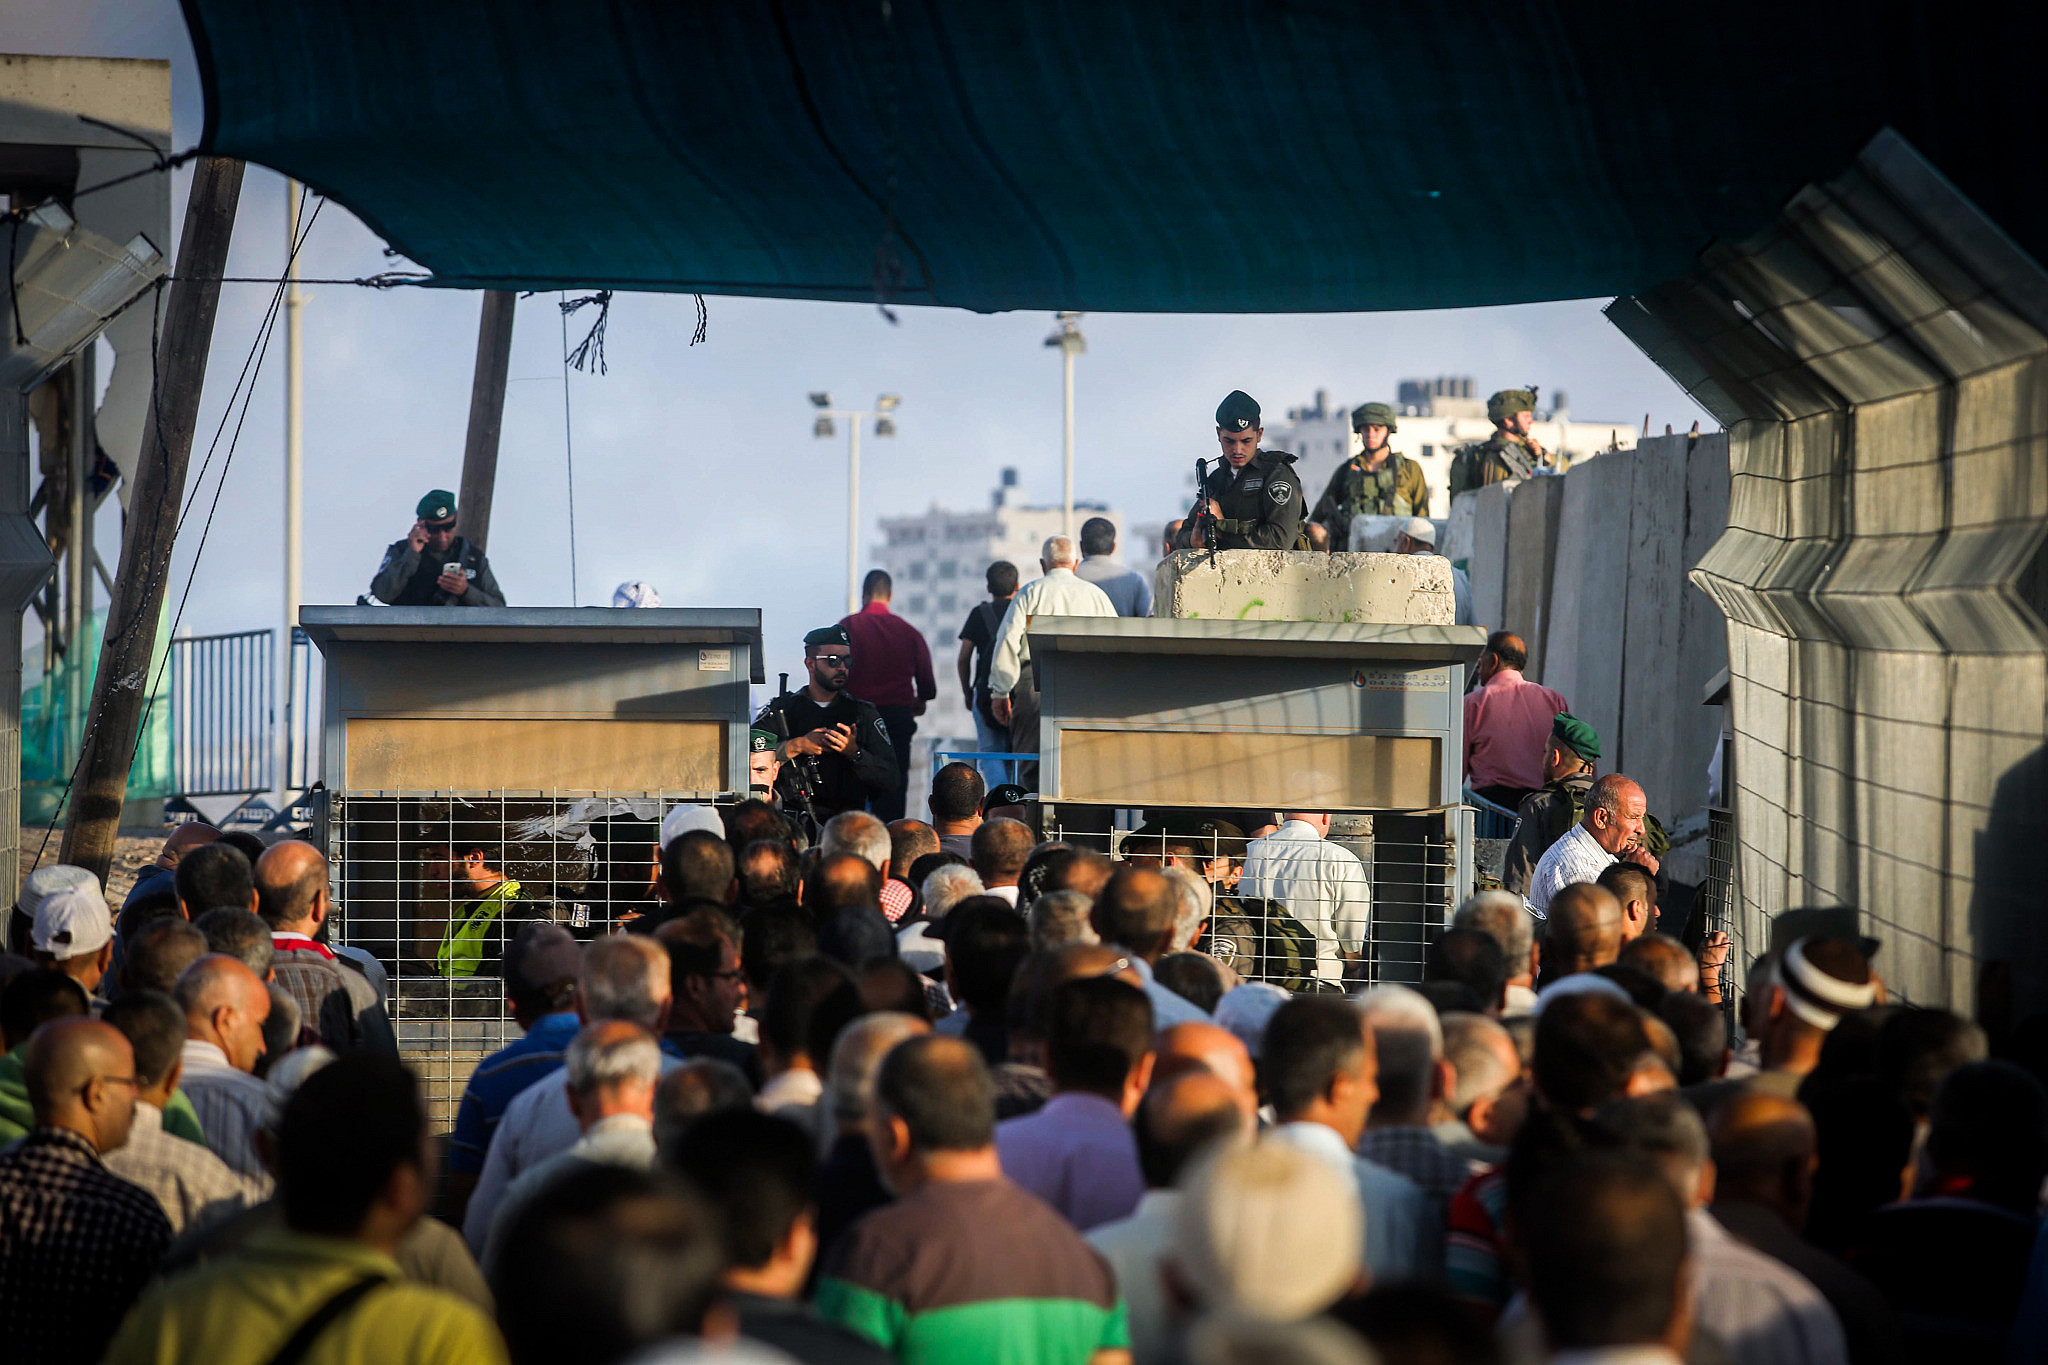 Palestinians cross the Qalandiya checkpoint, outside of the West bank city of Ramallah, as they head to the Al-Aqsa mosque compound in Jerusalem's Old City to attend the first Friday prayers of Ramadan. June 10, 2016. (Flash90)